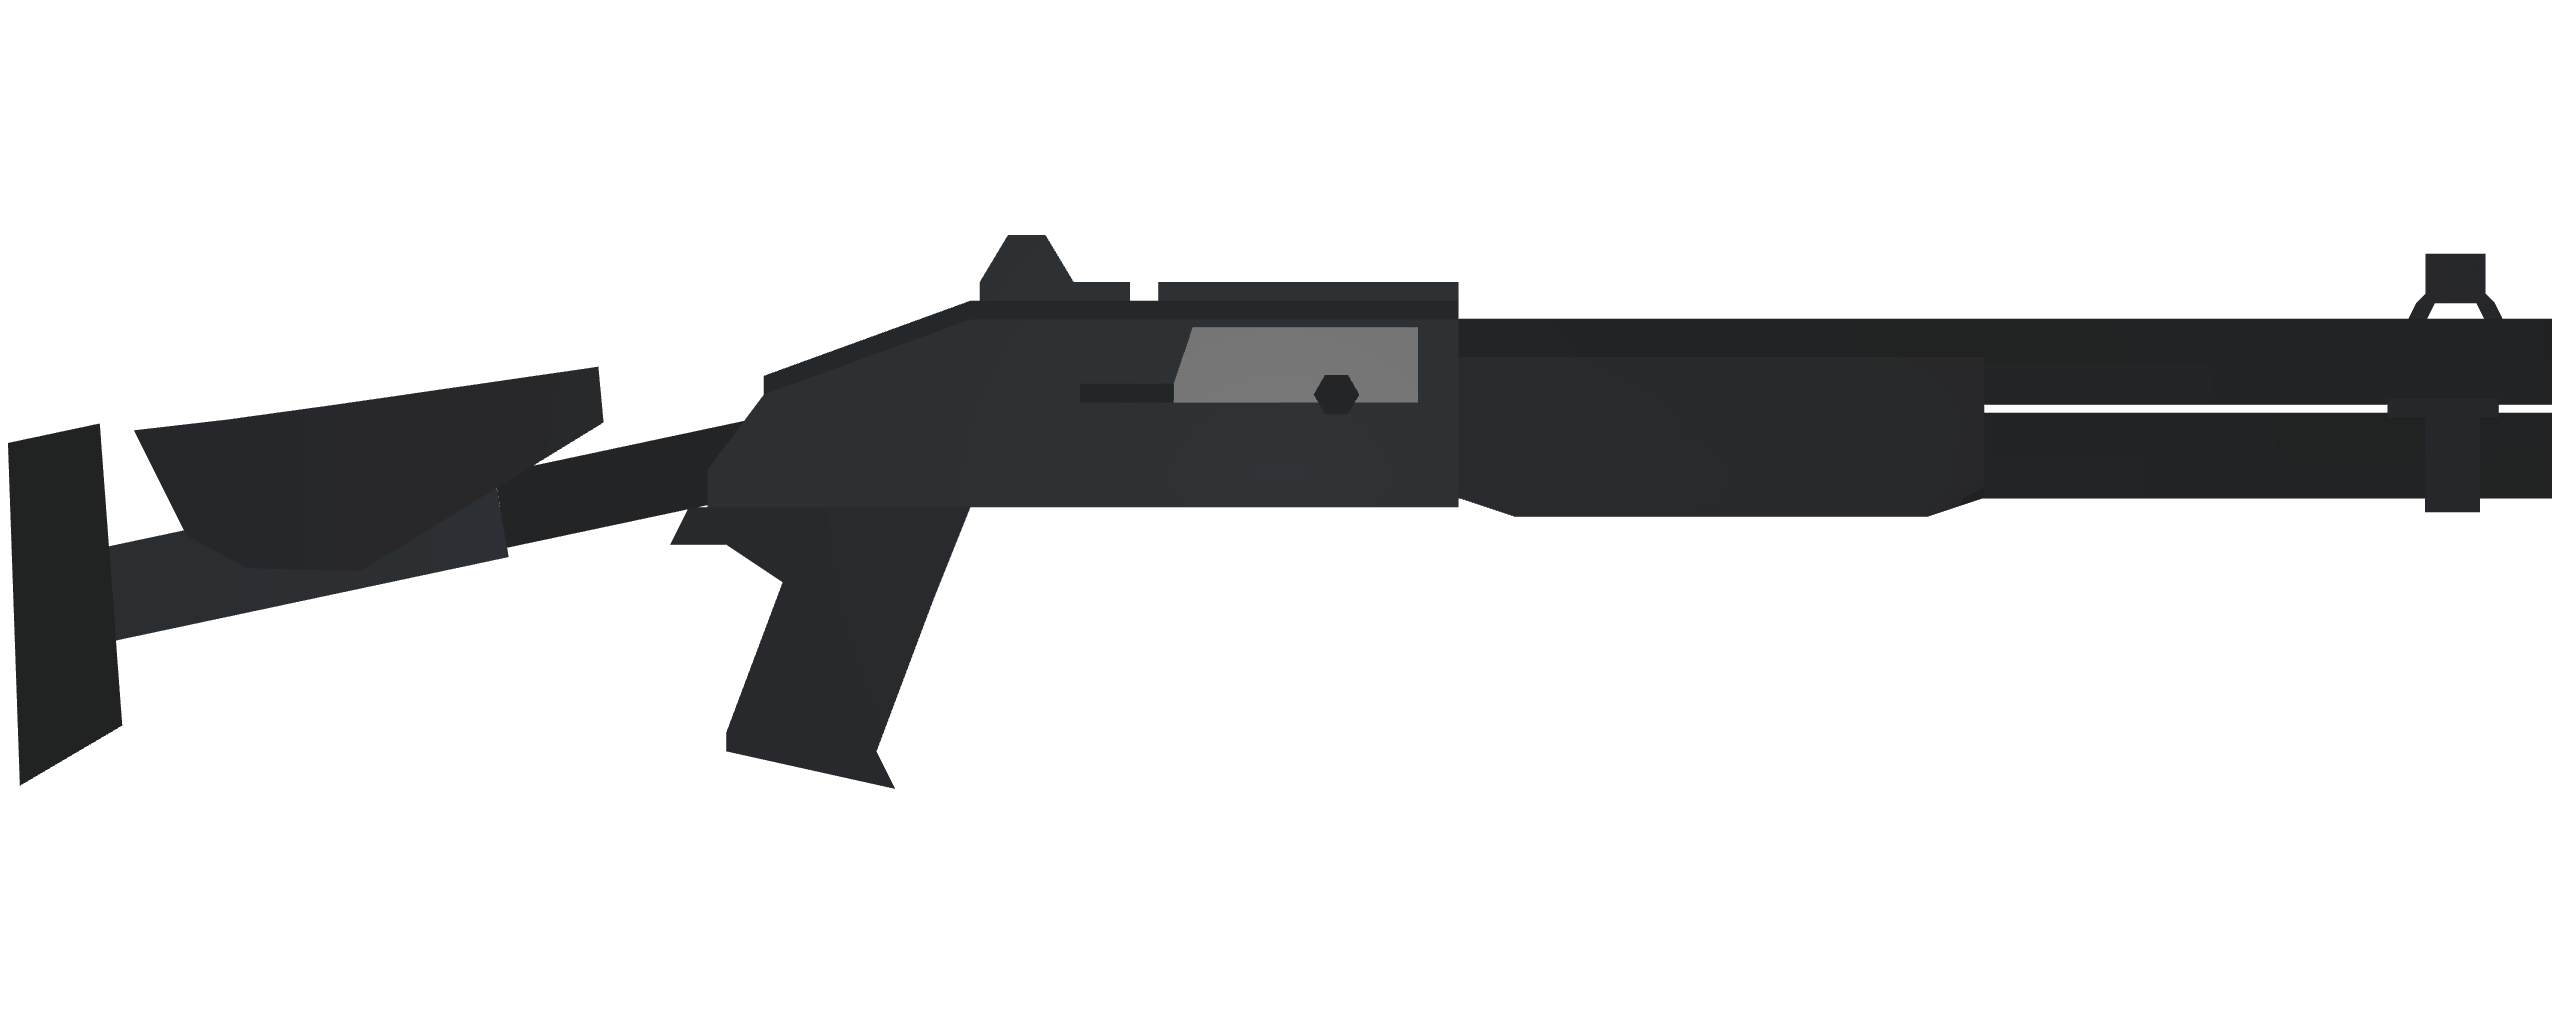 Unturned - All Weapons ID's for Uncreated Warfare Mods - USA Weapons - CC29709